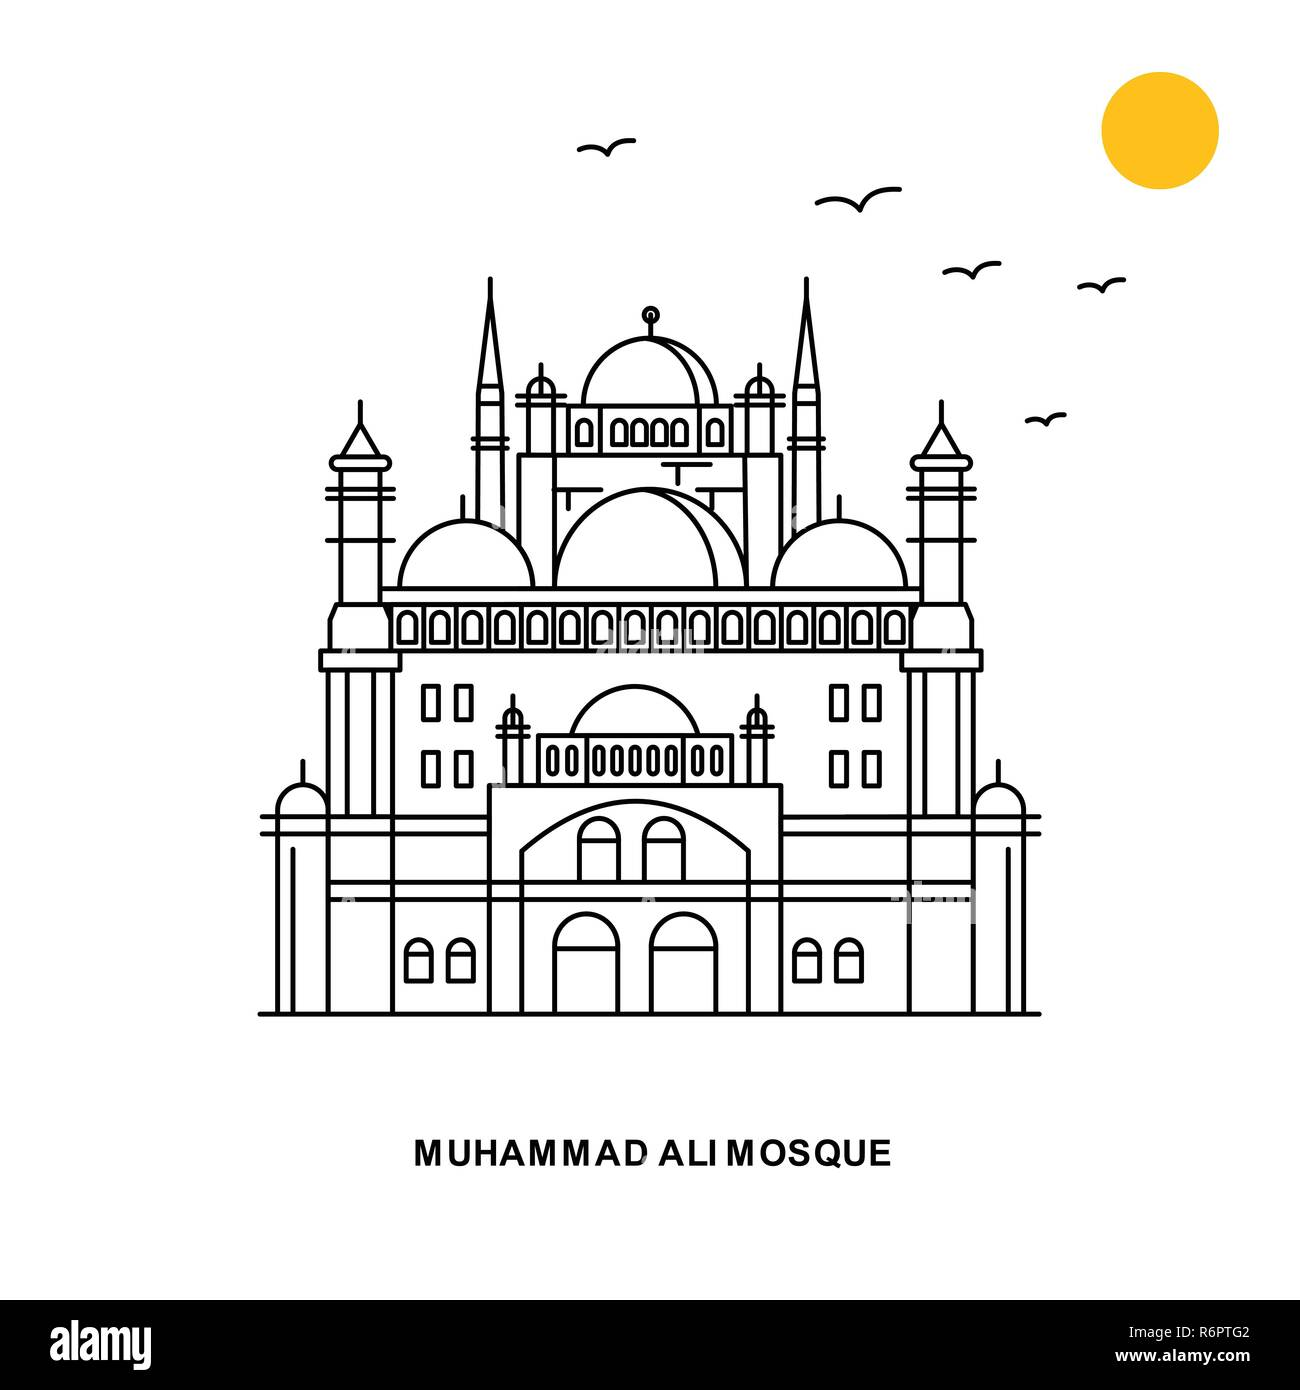 MUHAMMAD ALI MOSQUE Monument. World Travel Natural illustration Background in Line Style - Stock Image